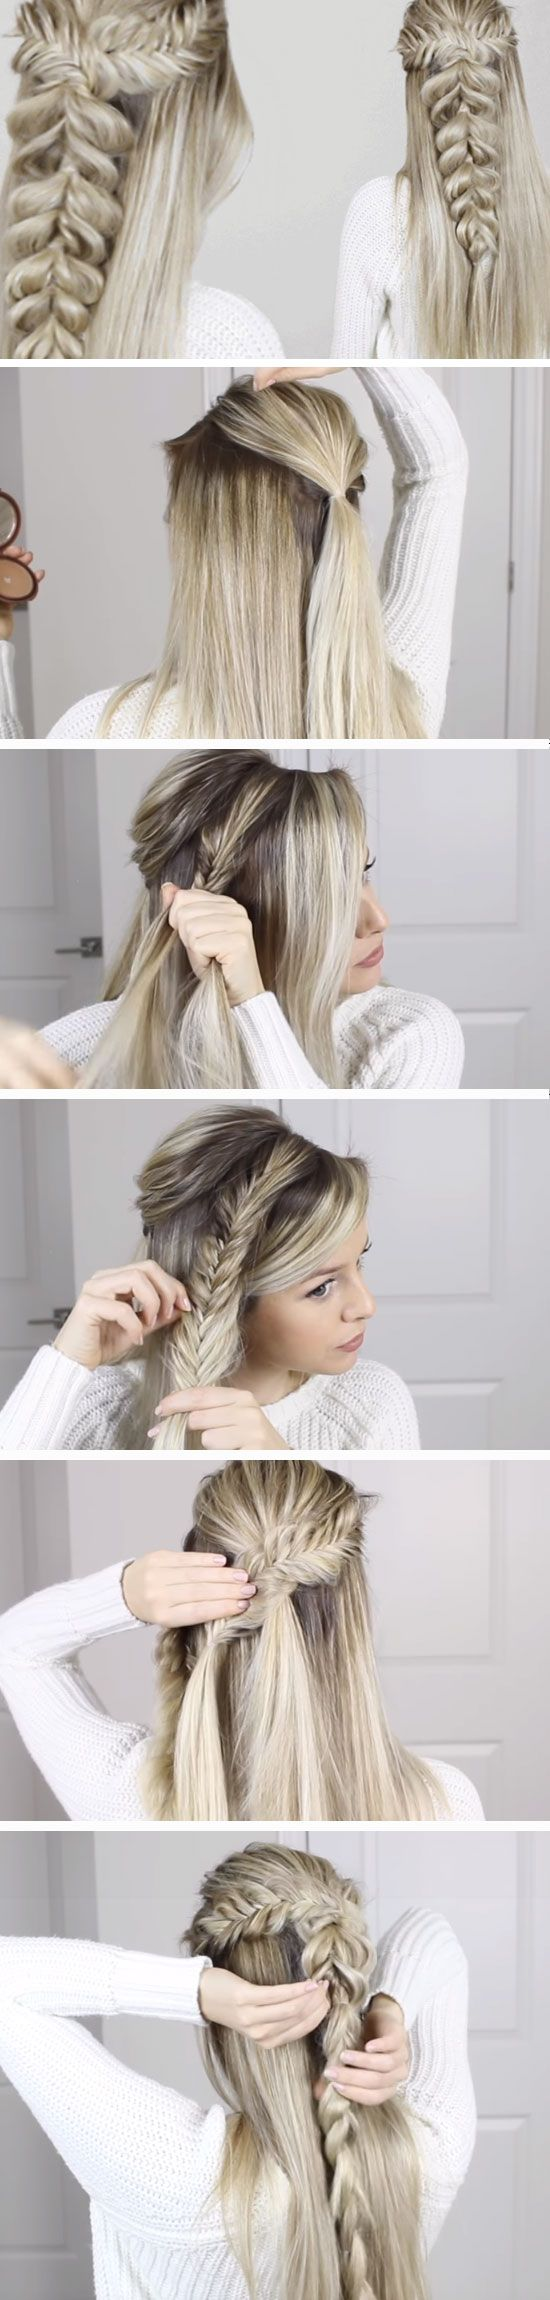 63 amazing braid hairstyles for party and holidays | braid